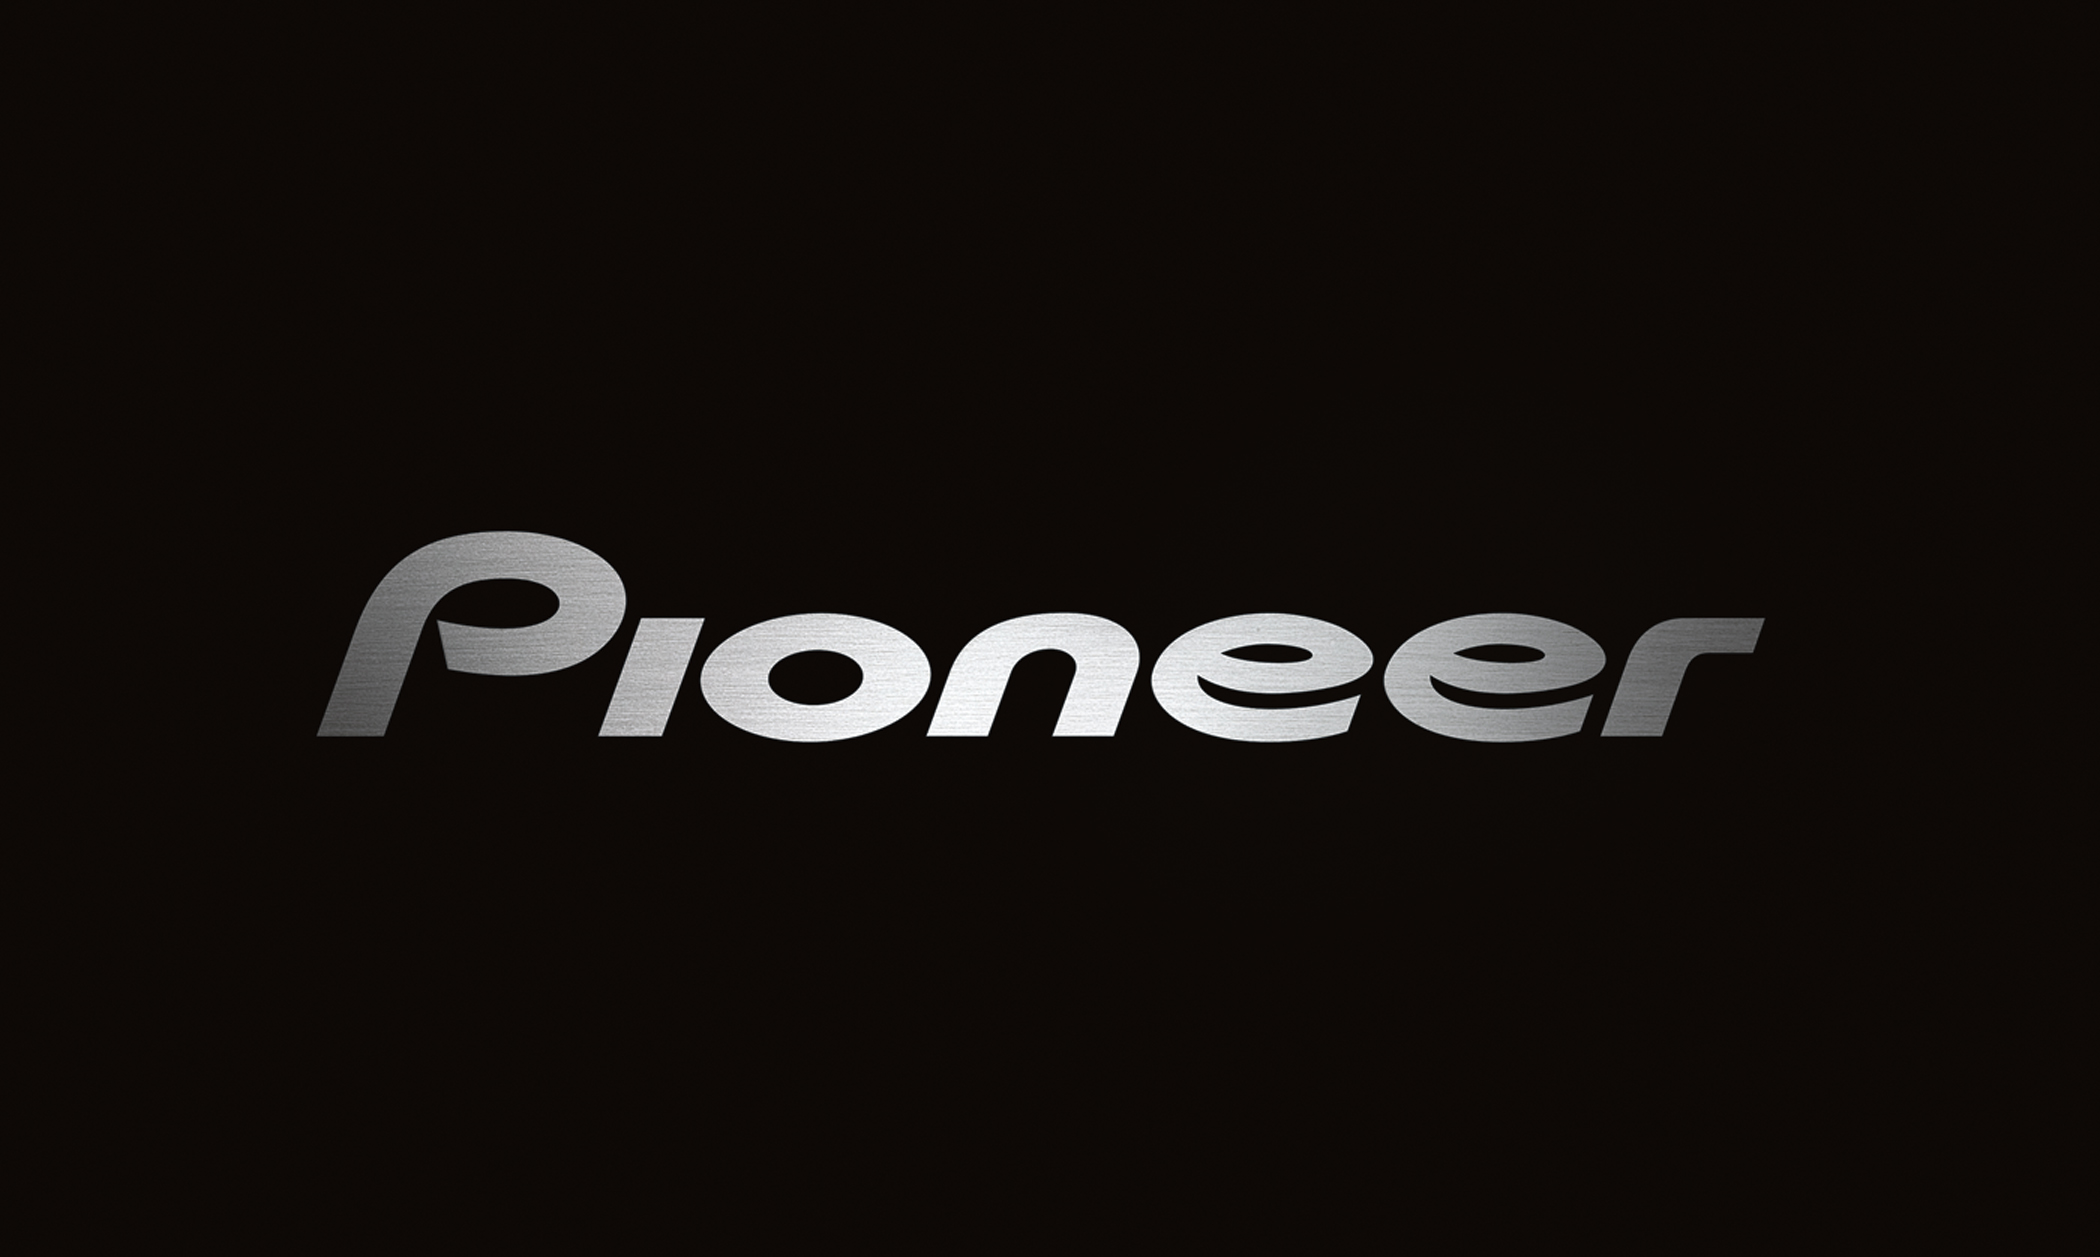 logo Pioneer